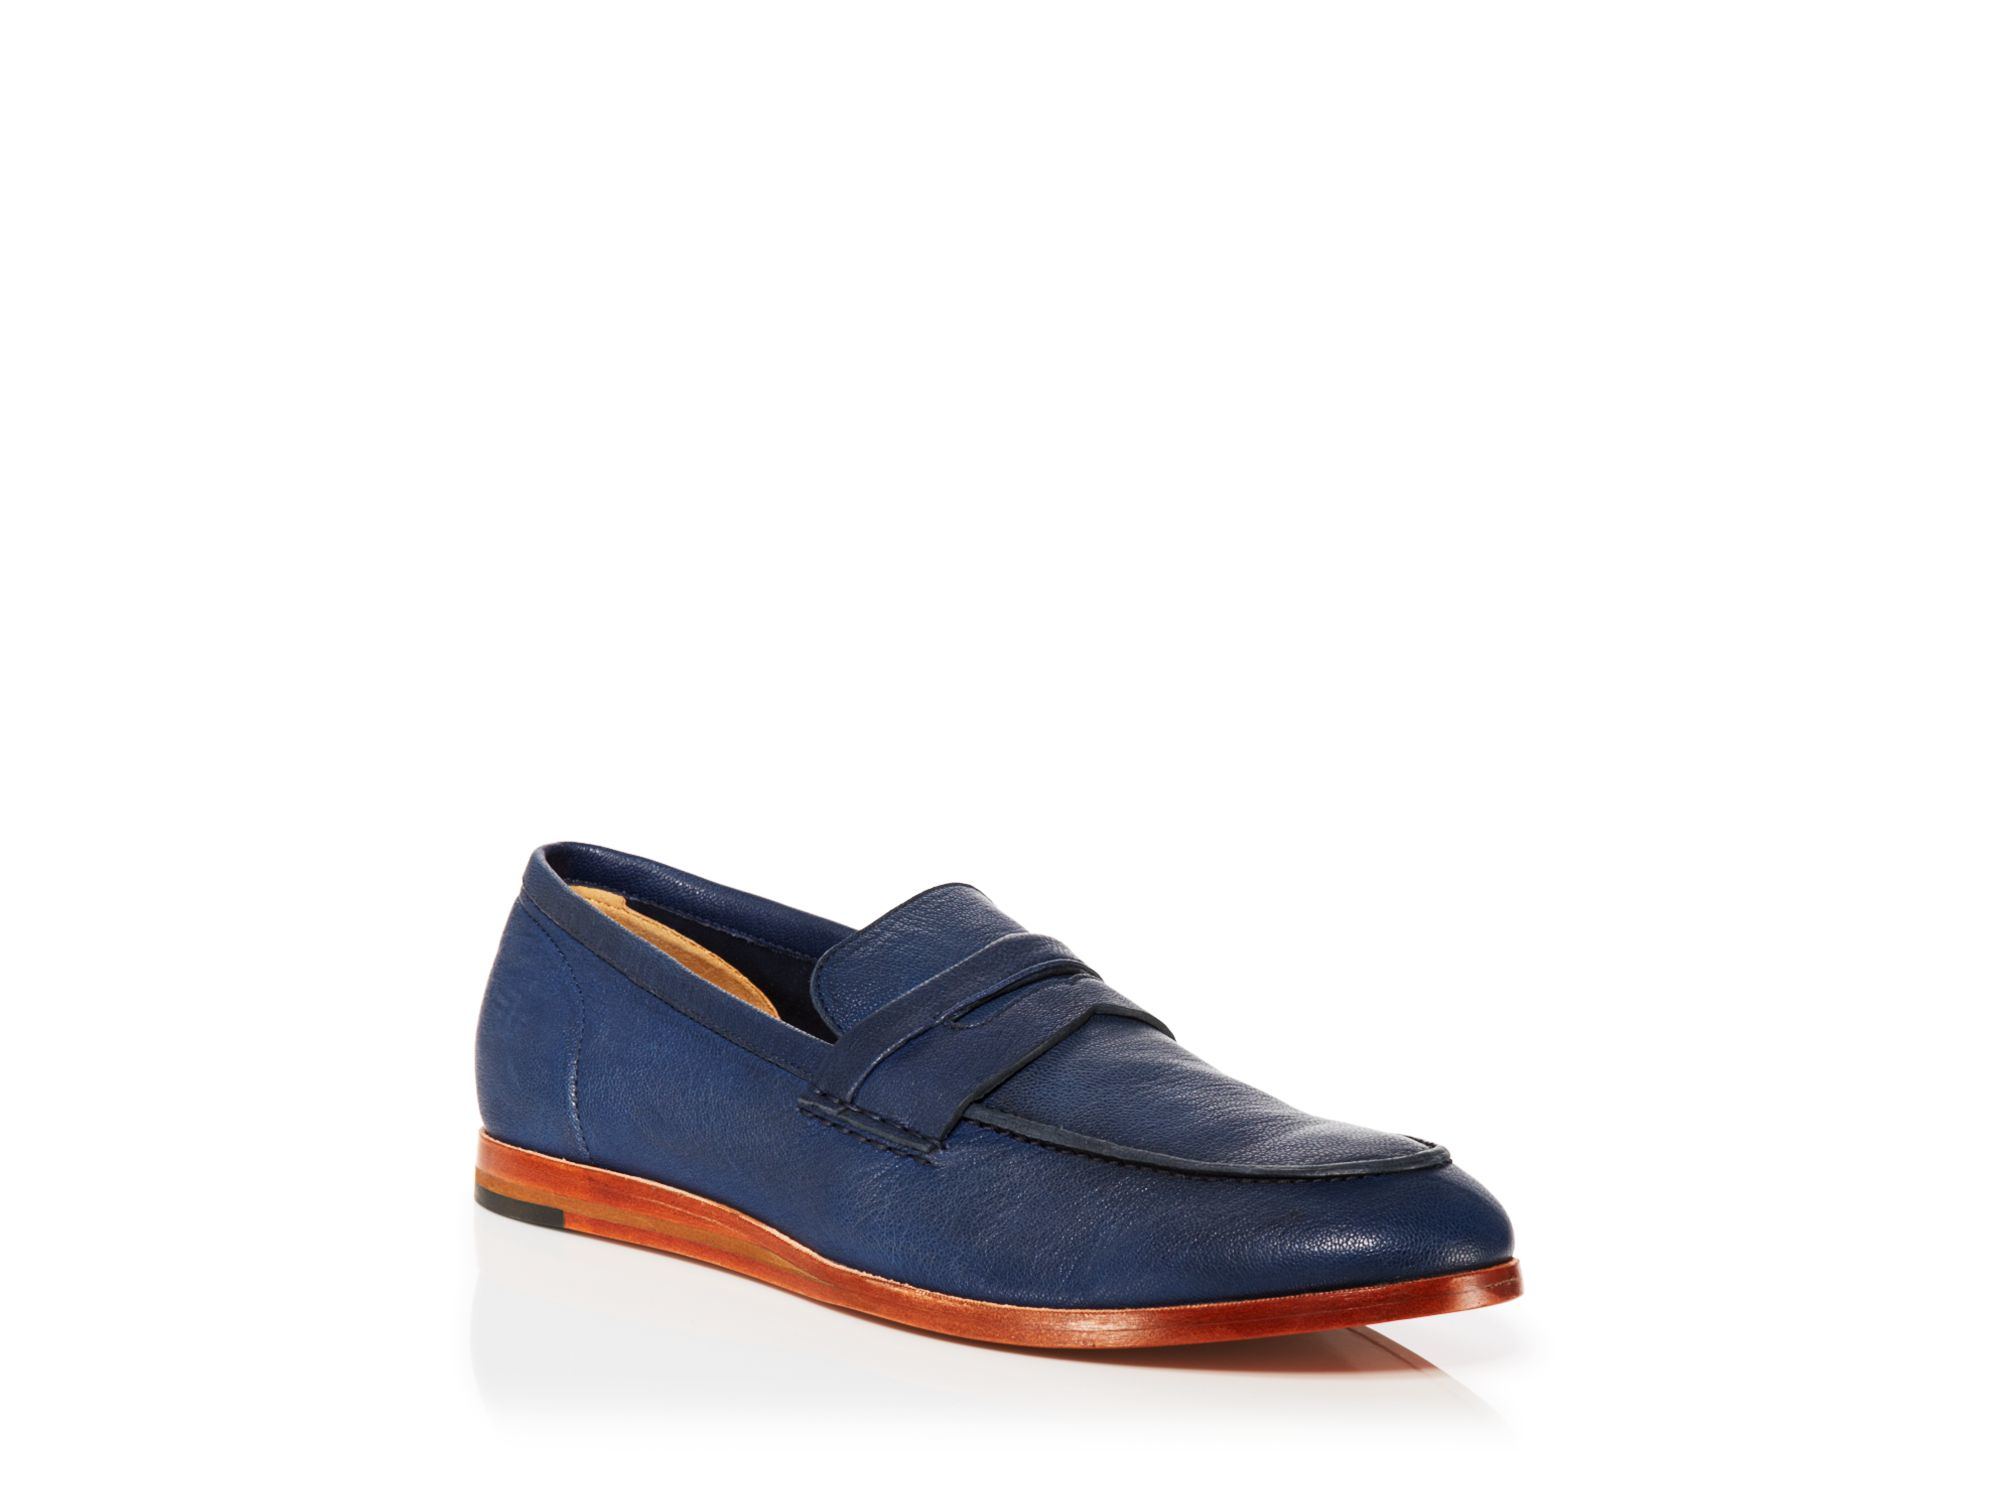 8f2a2269016 Lyst - Cole Haan Bedford Penny Loafers in Blue for Men